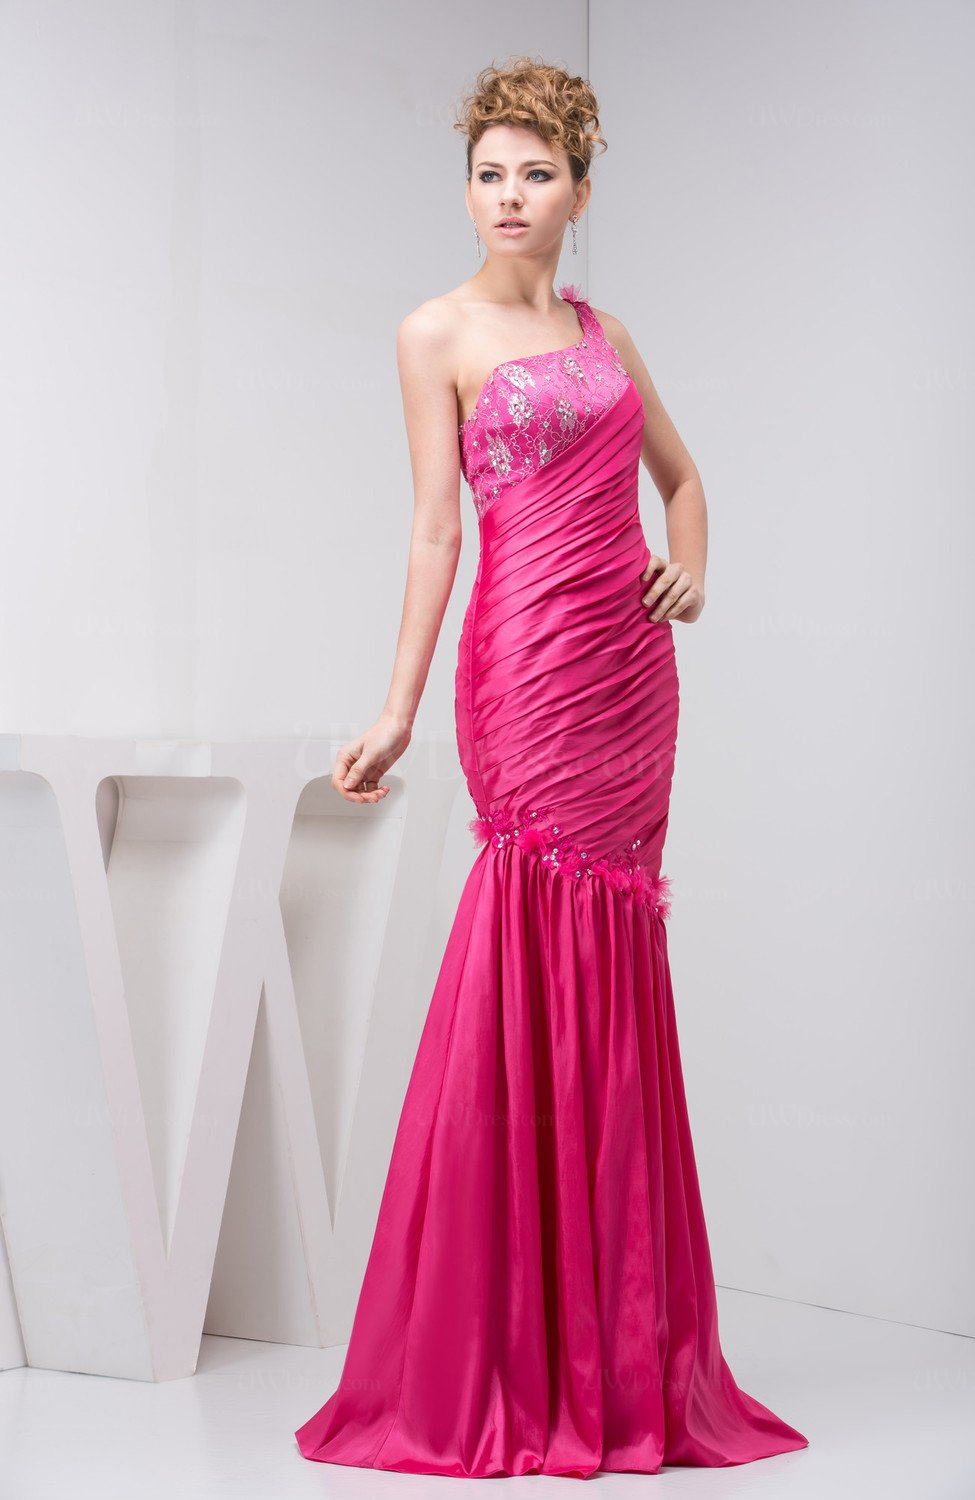 Fuschia casual wedding guest dress inexpensive luxury for Cheap wedding guest dresses